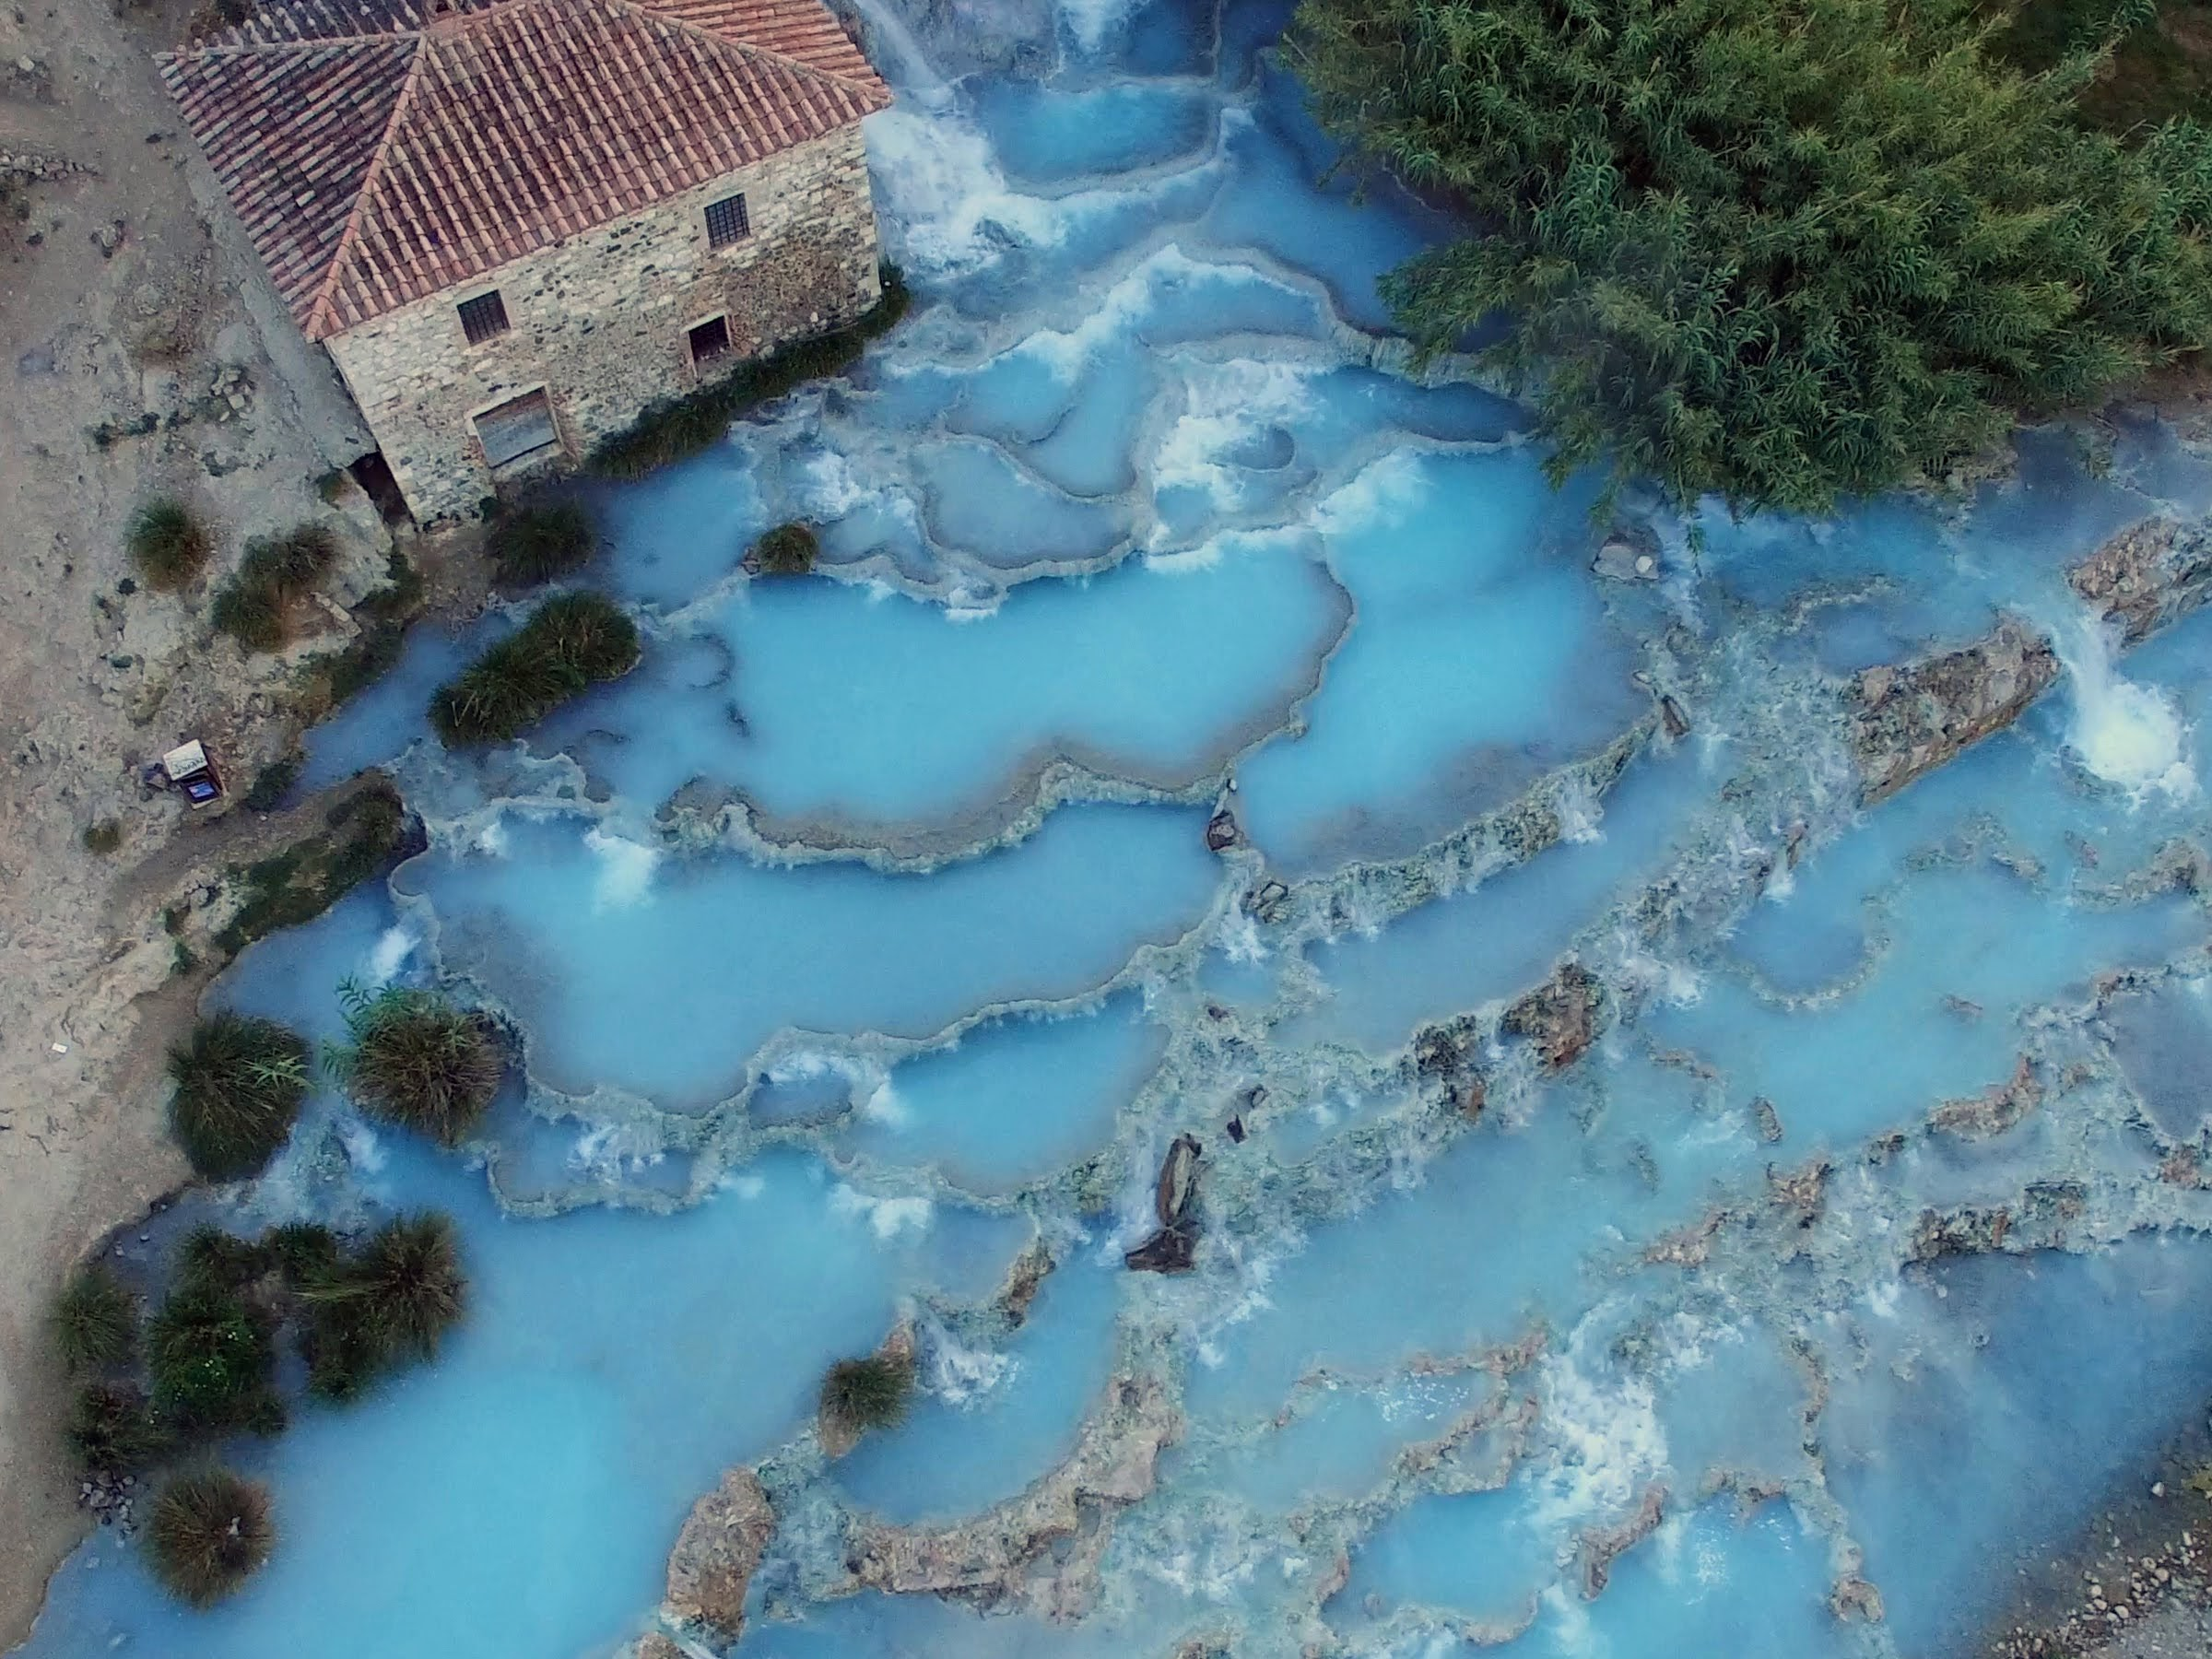 Tuscany, Saturnia, Cascate del Mulino in the early morning